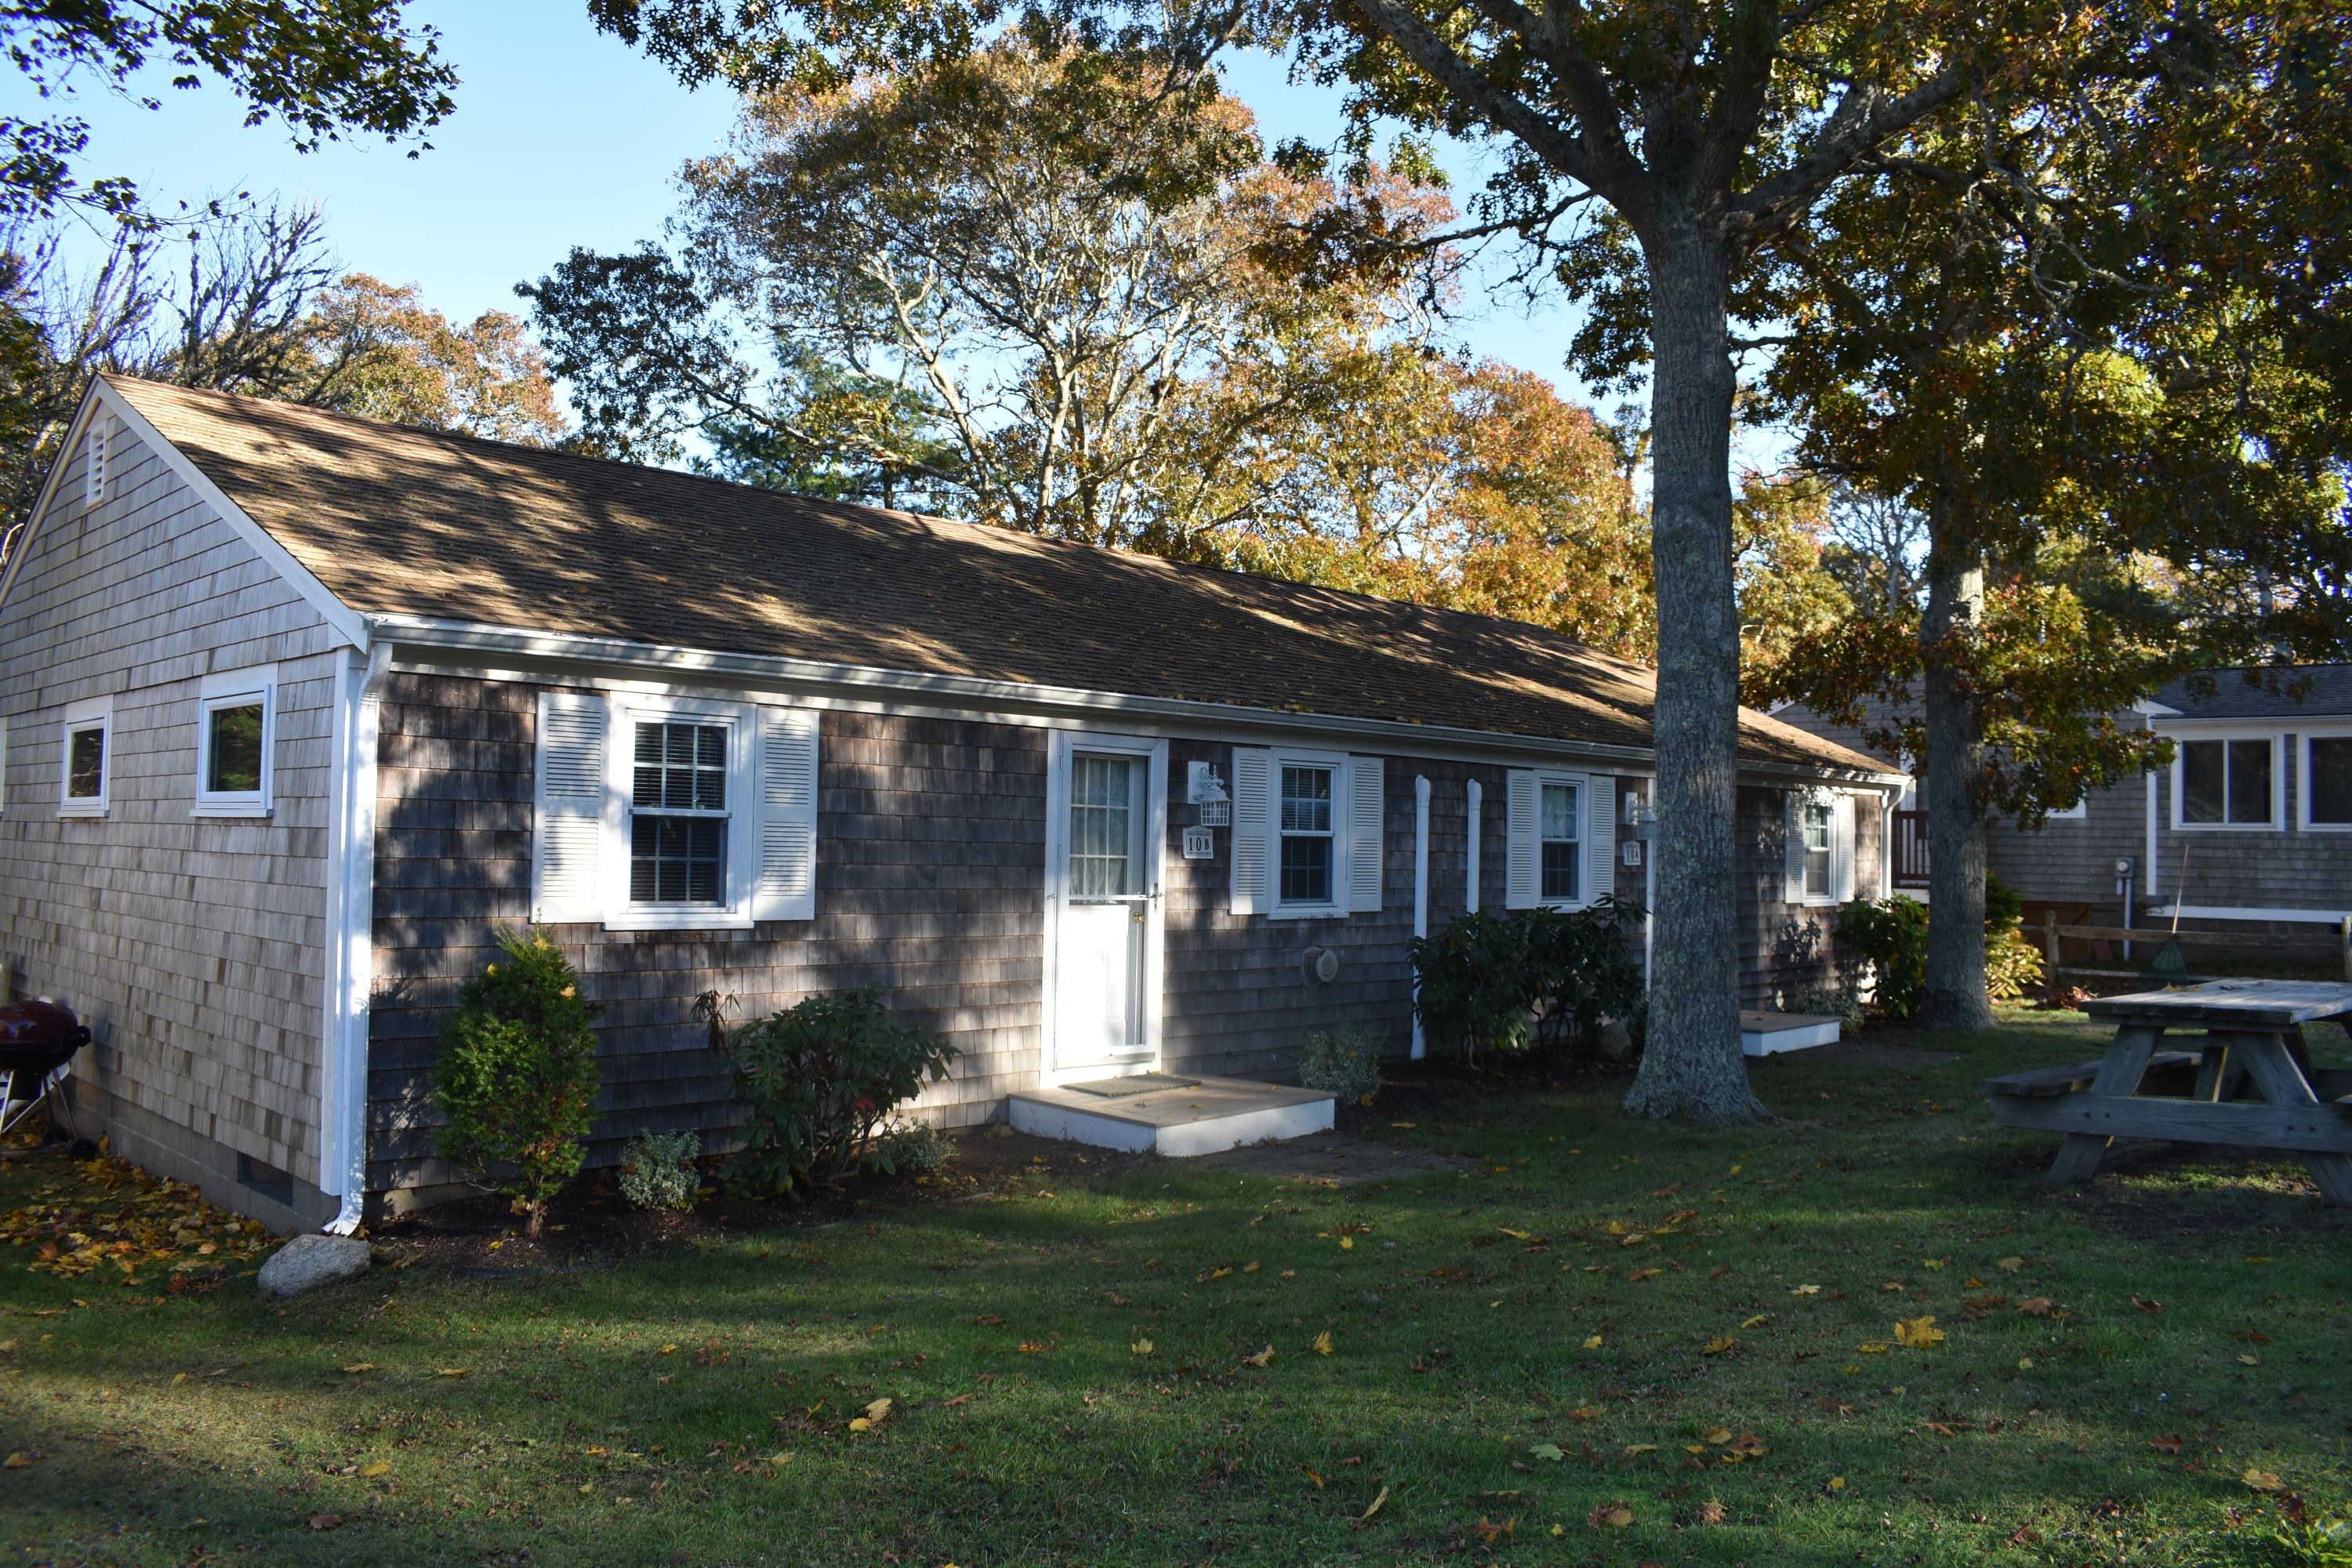 click to view more details 10 Kellys Way, West Dennis, MA 02670